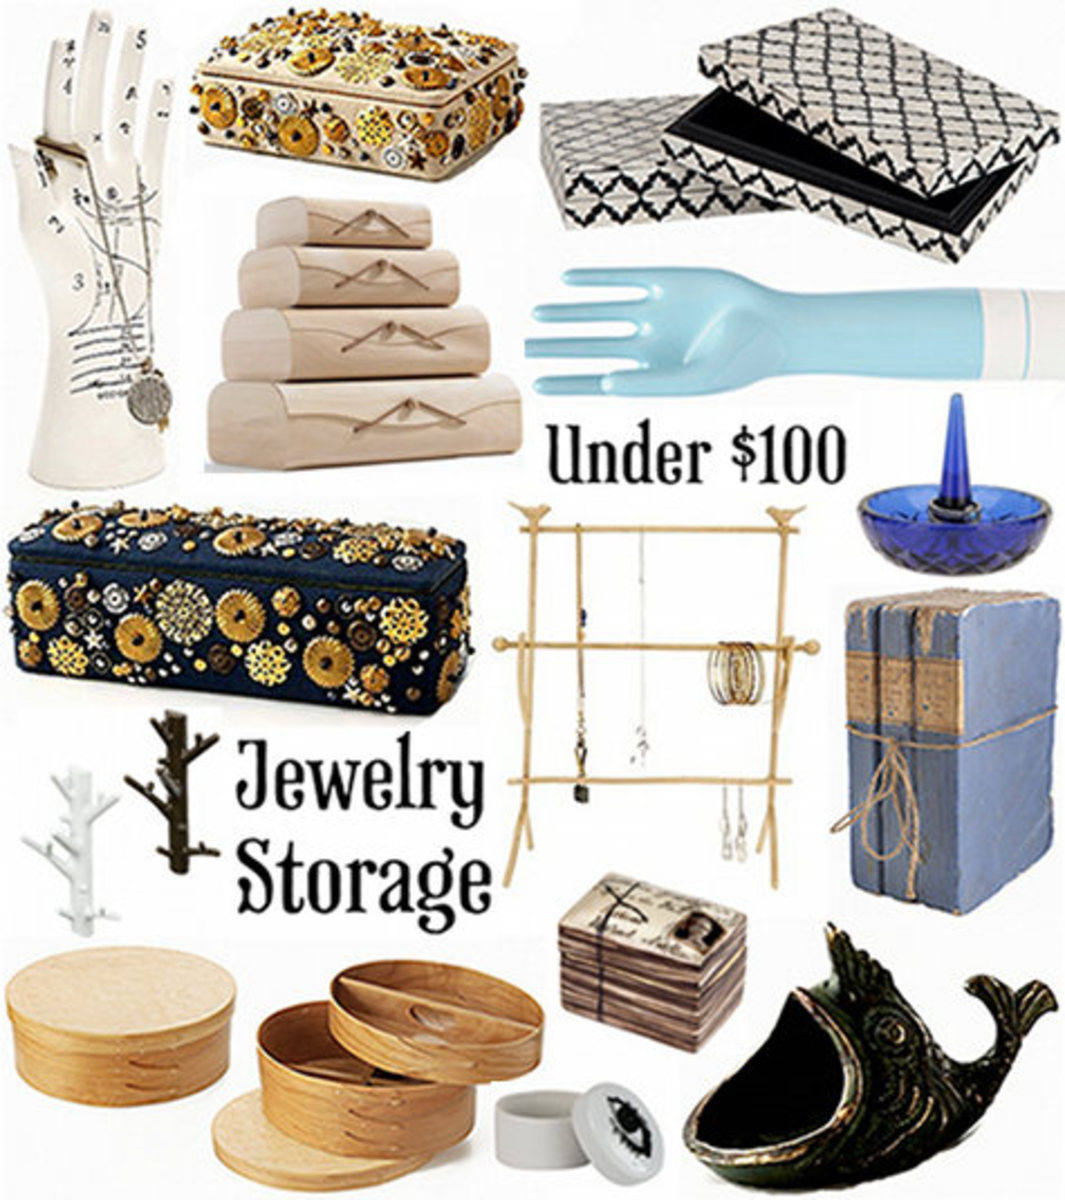 Check out these great jewelry storage options.